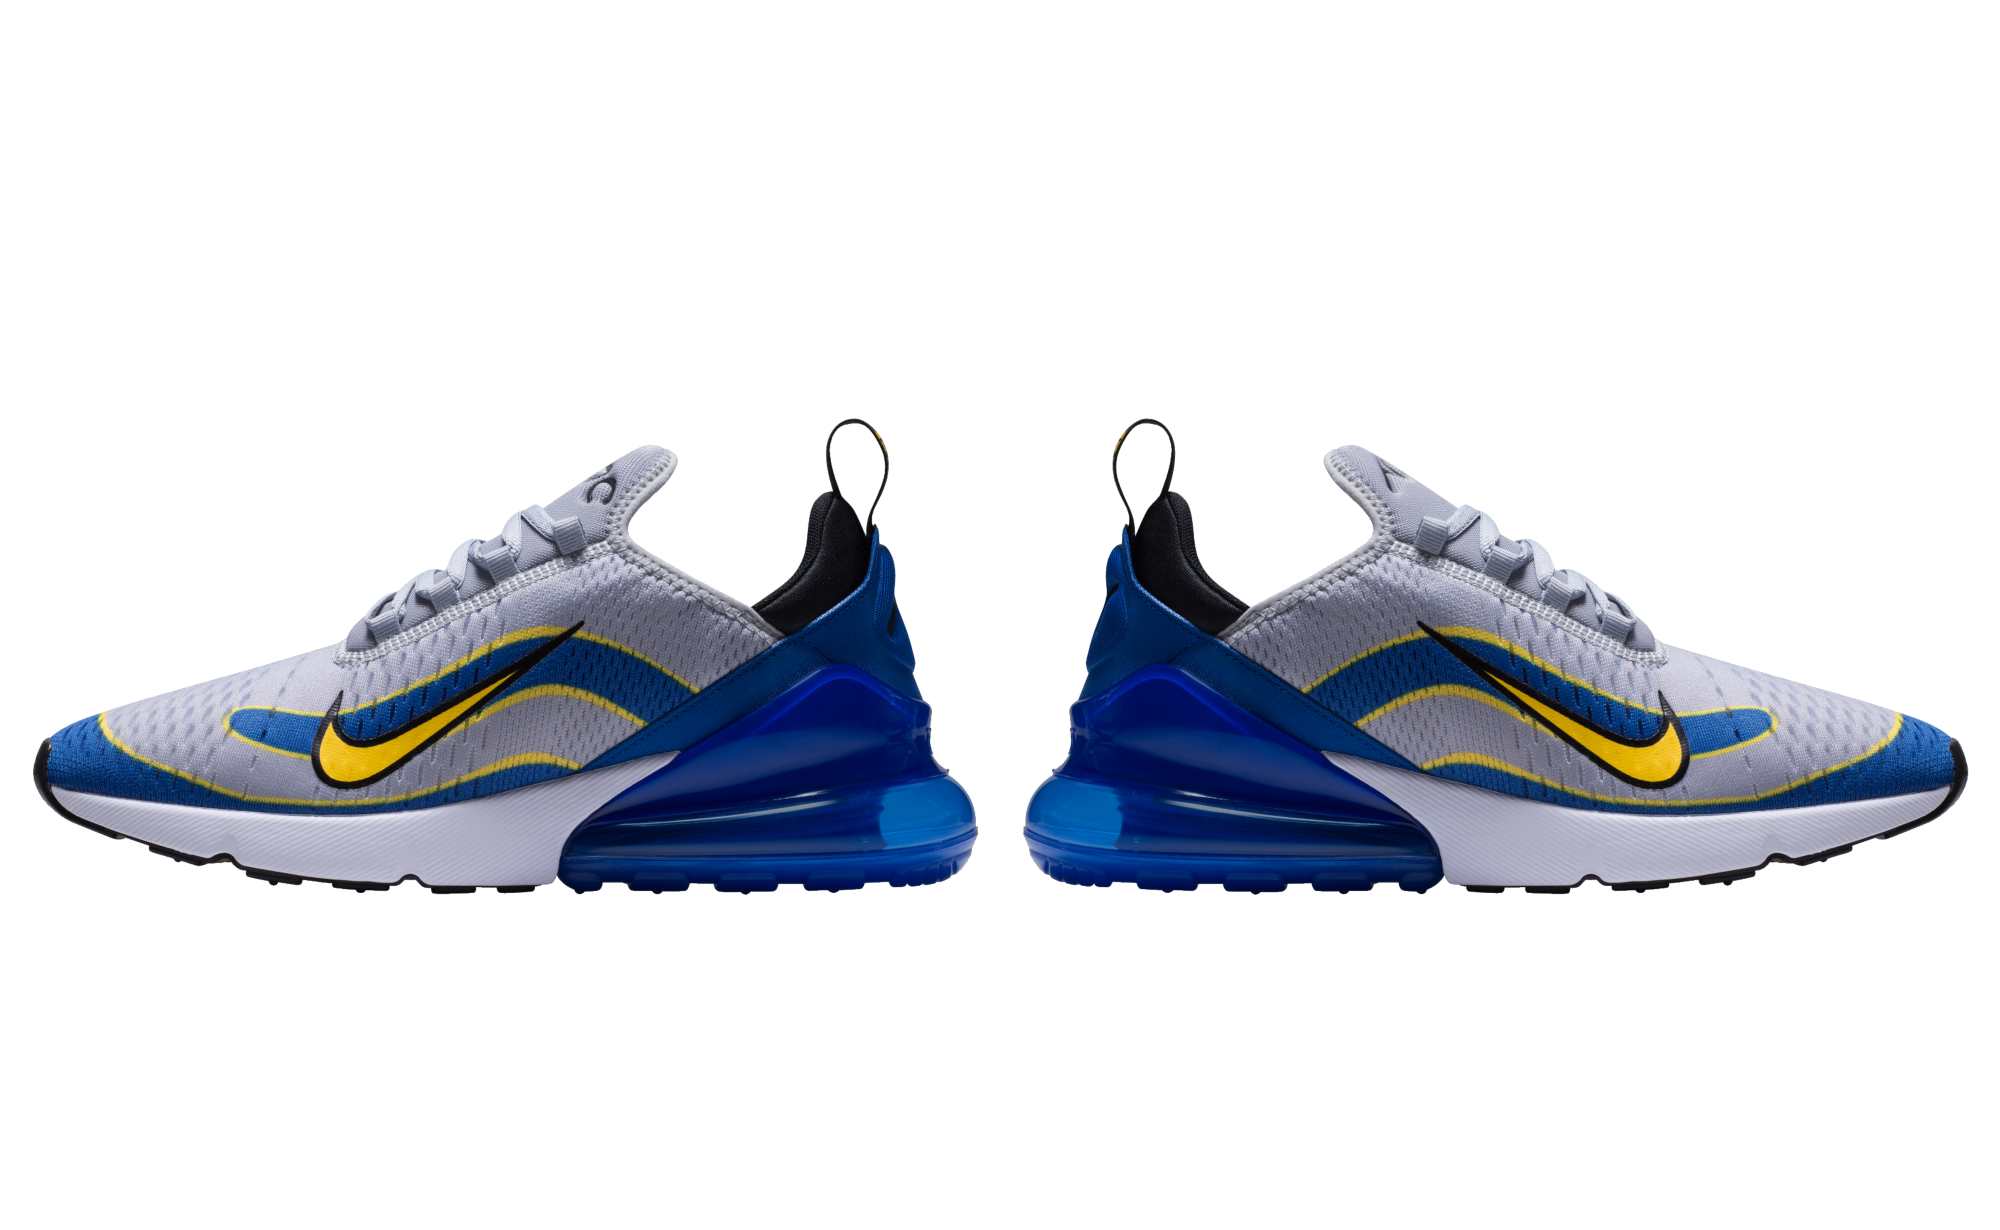 new product b3c80 13105 Nike Just Dropped an R9-Inspired Mercurial x Air Max 270